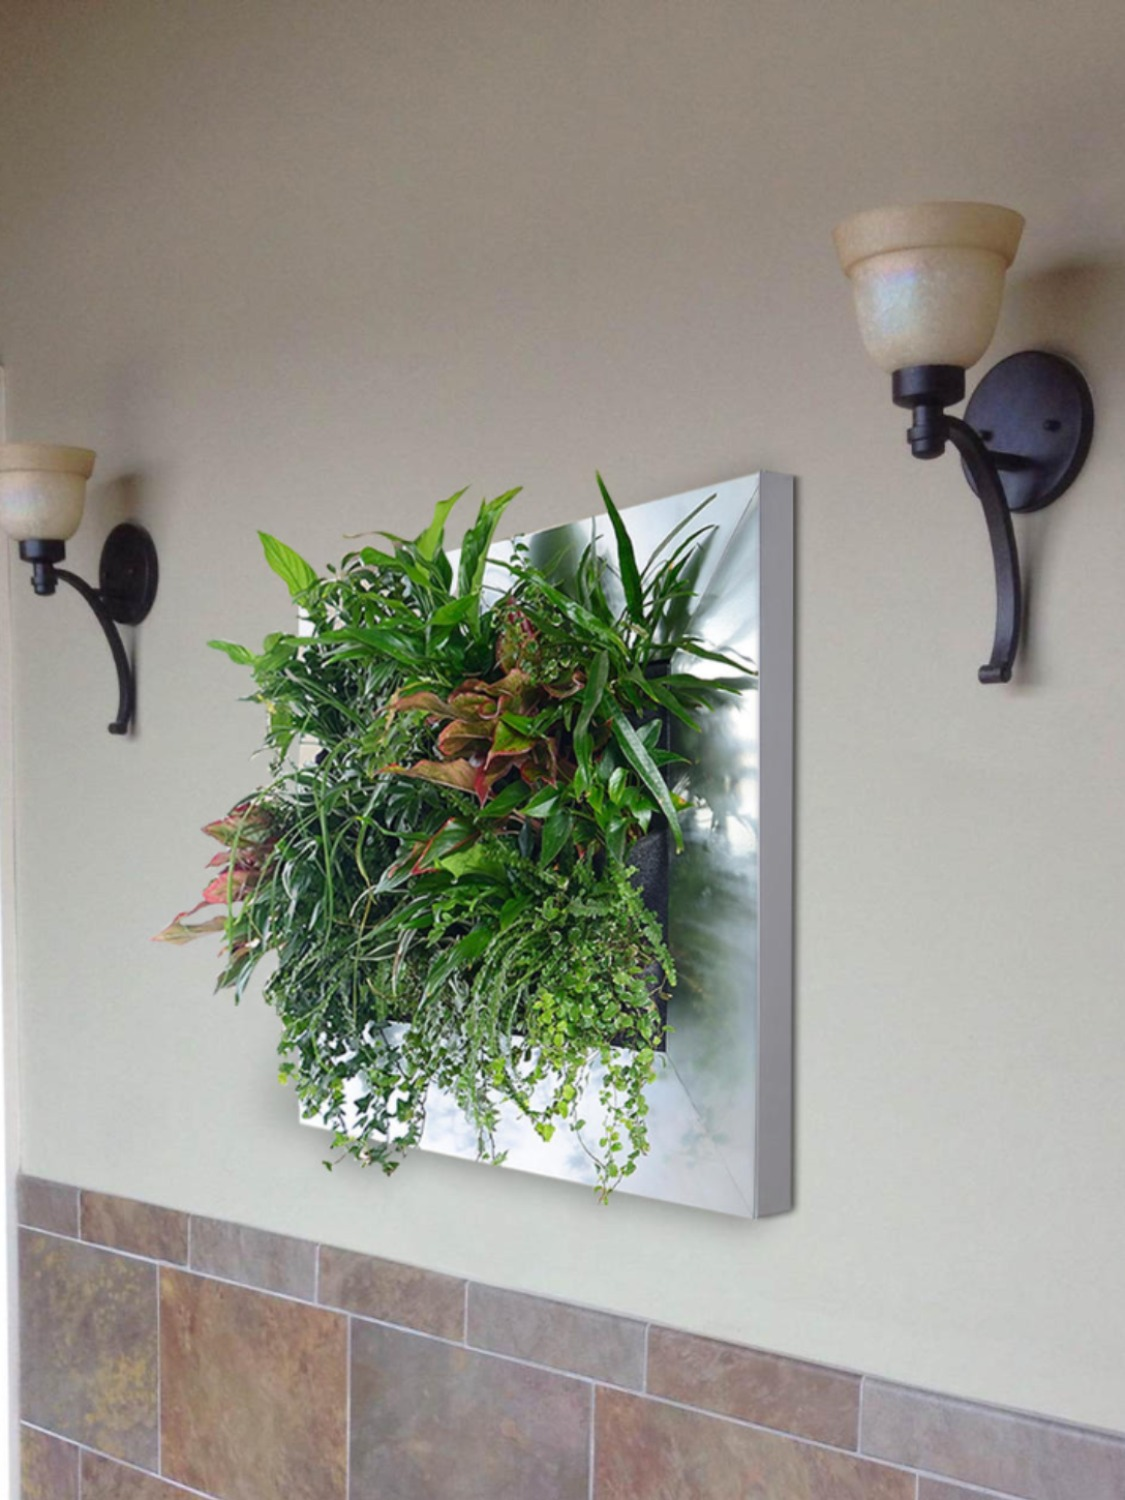 Vertical Gardens Come In Many Sizes!